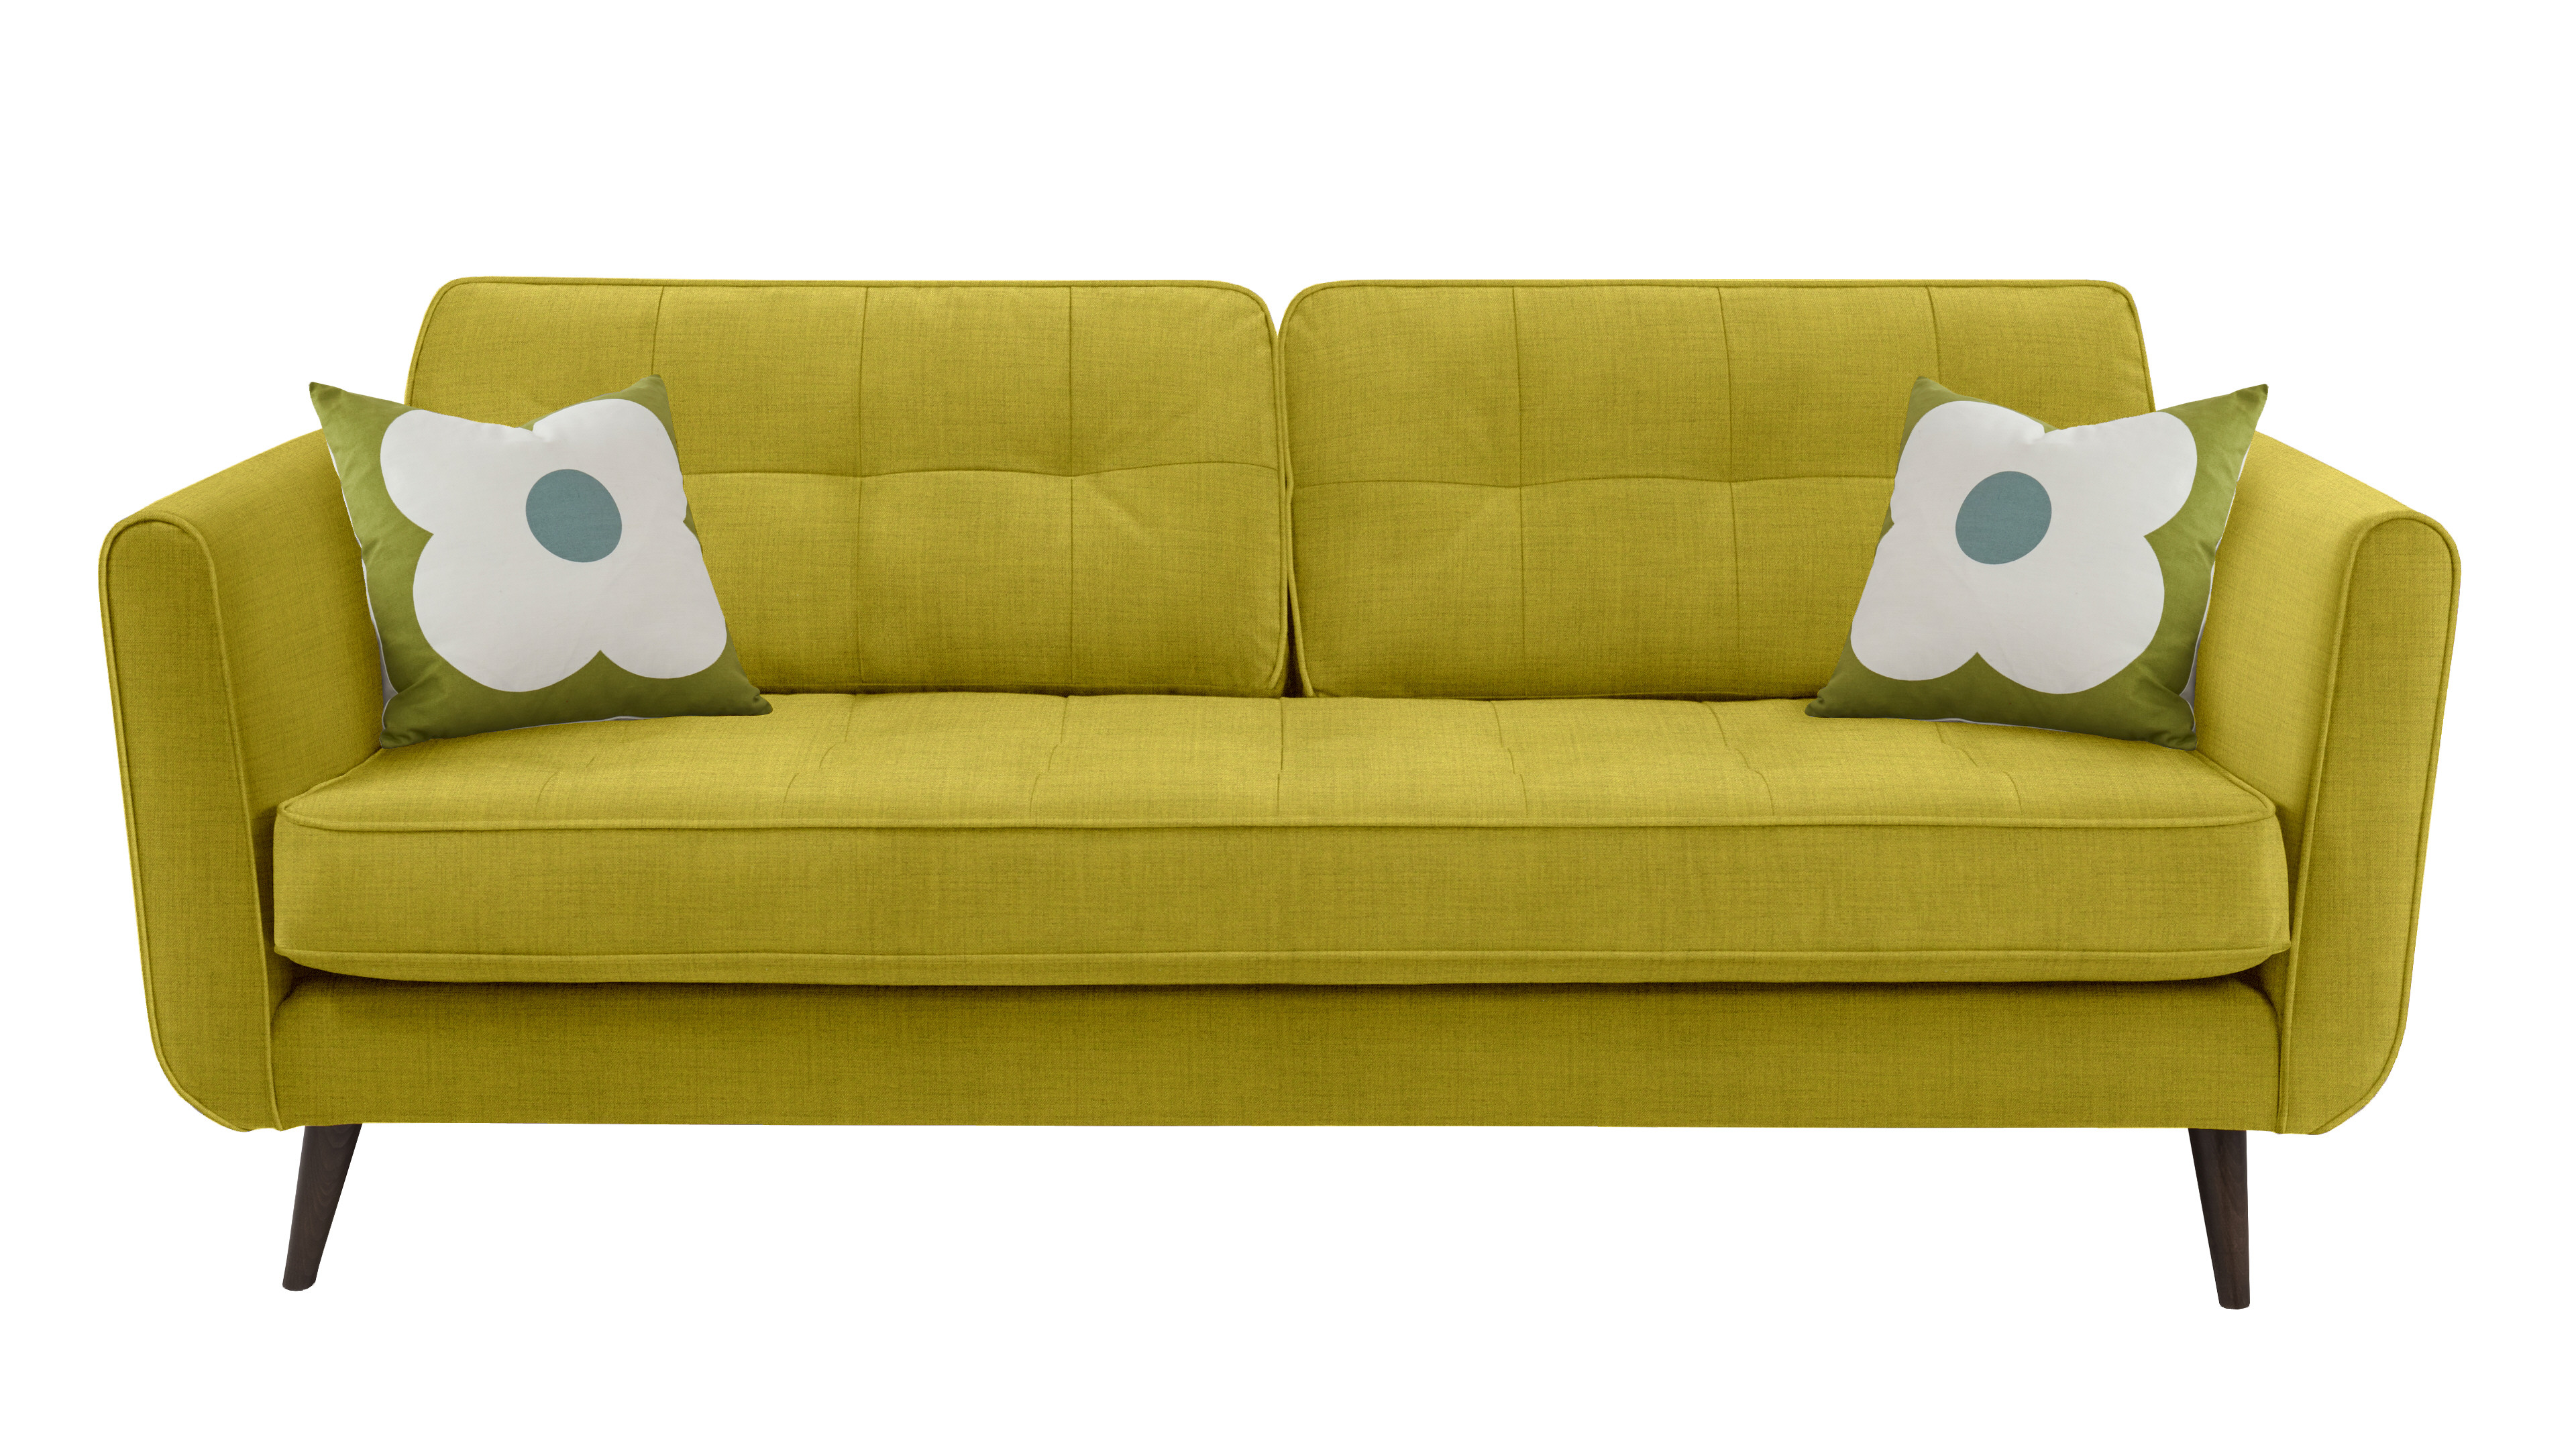 Ivy large Sofa Liffey